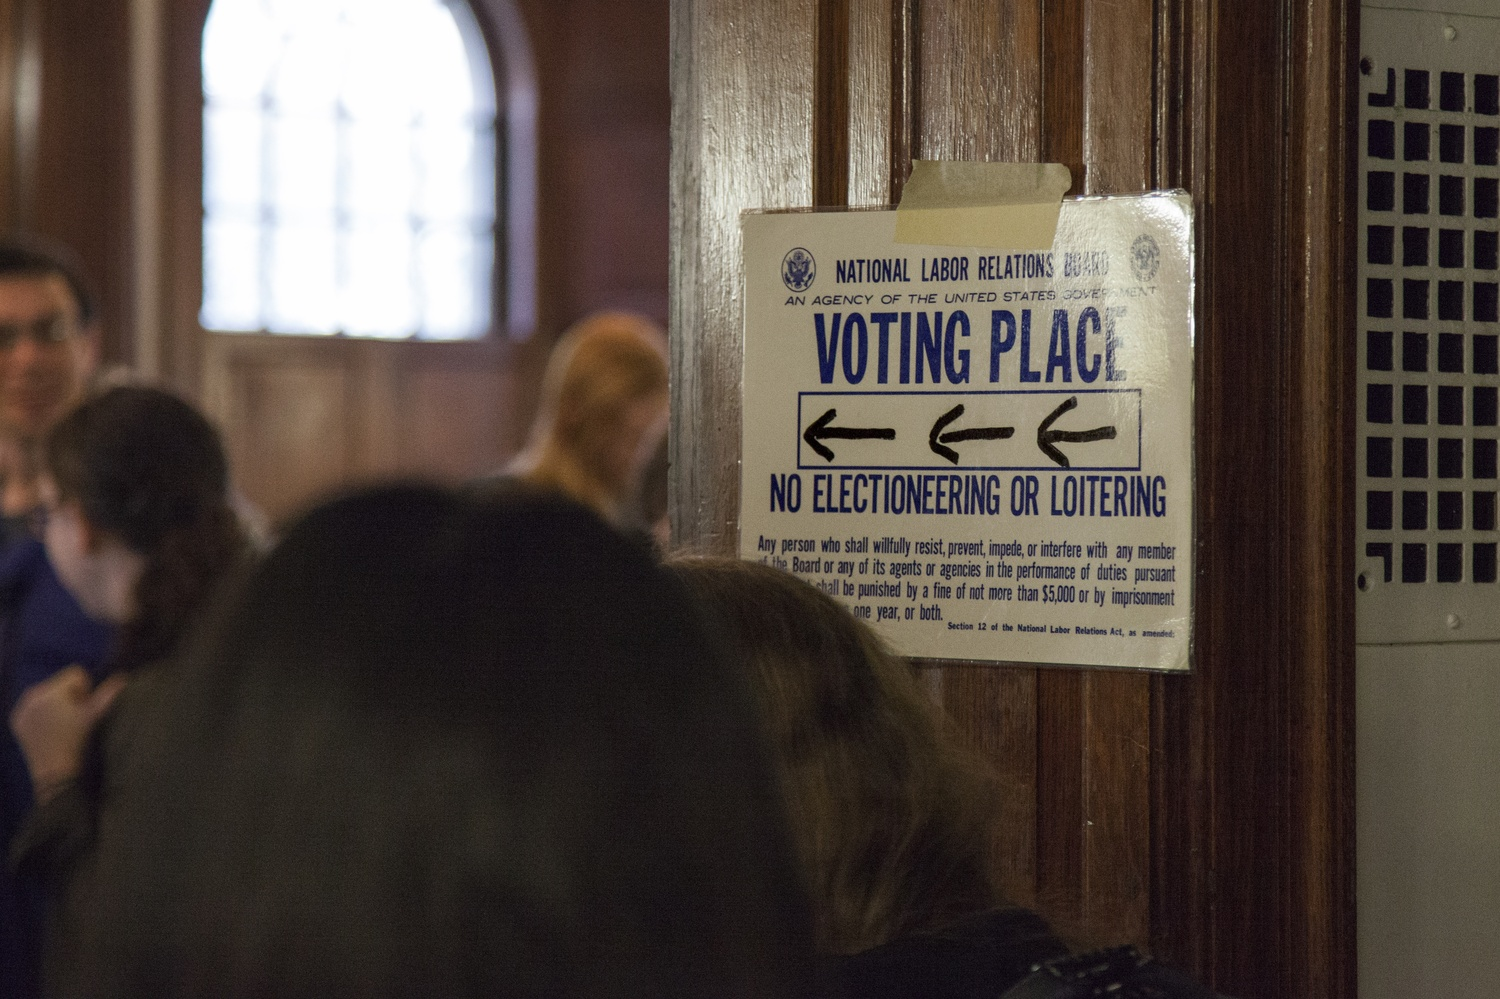 A sign directs voters to the polling place for the Harvard Graduate Students Union-United Automobile Workers first unionization vote in 2016. After a second vote in 2018, the National Labor Relations Board certified the results of the election, which created the first student union in Harvard's history.